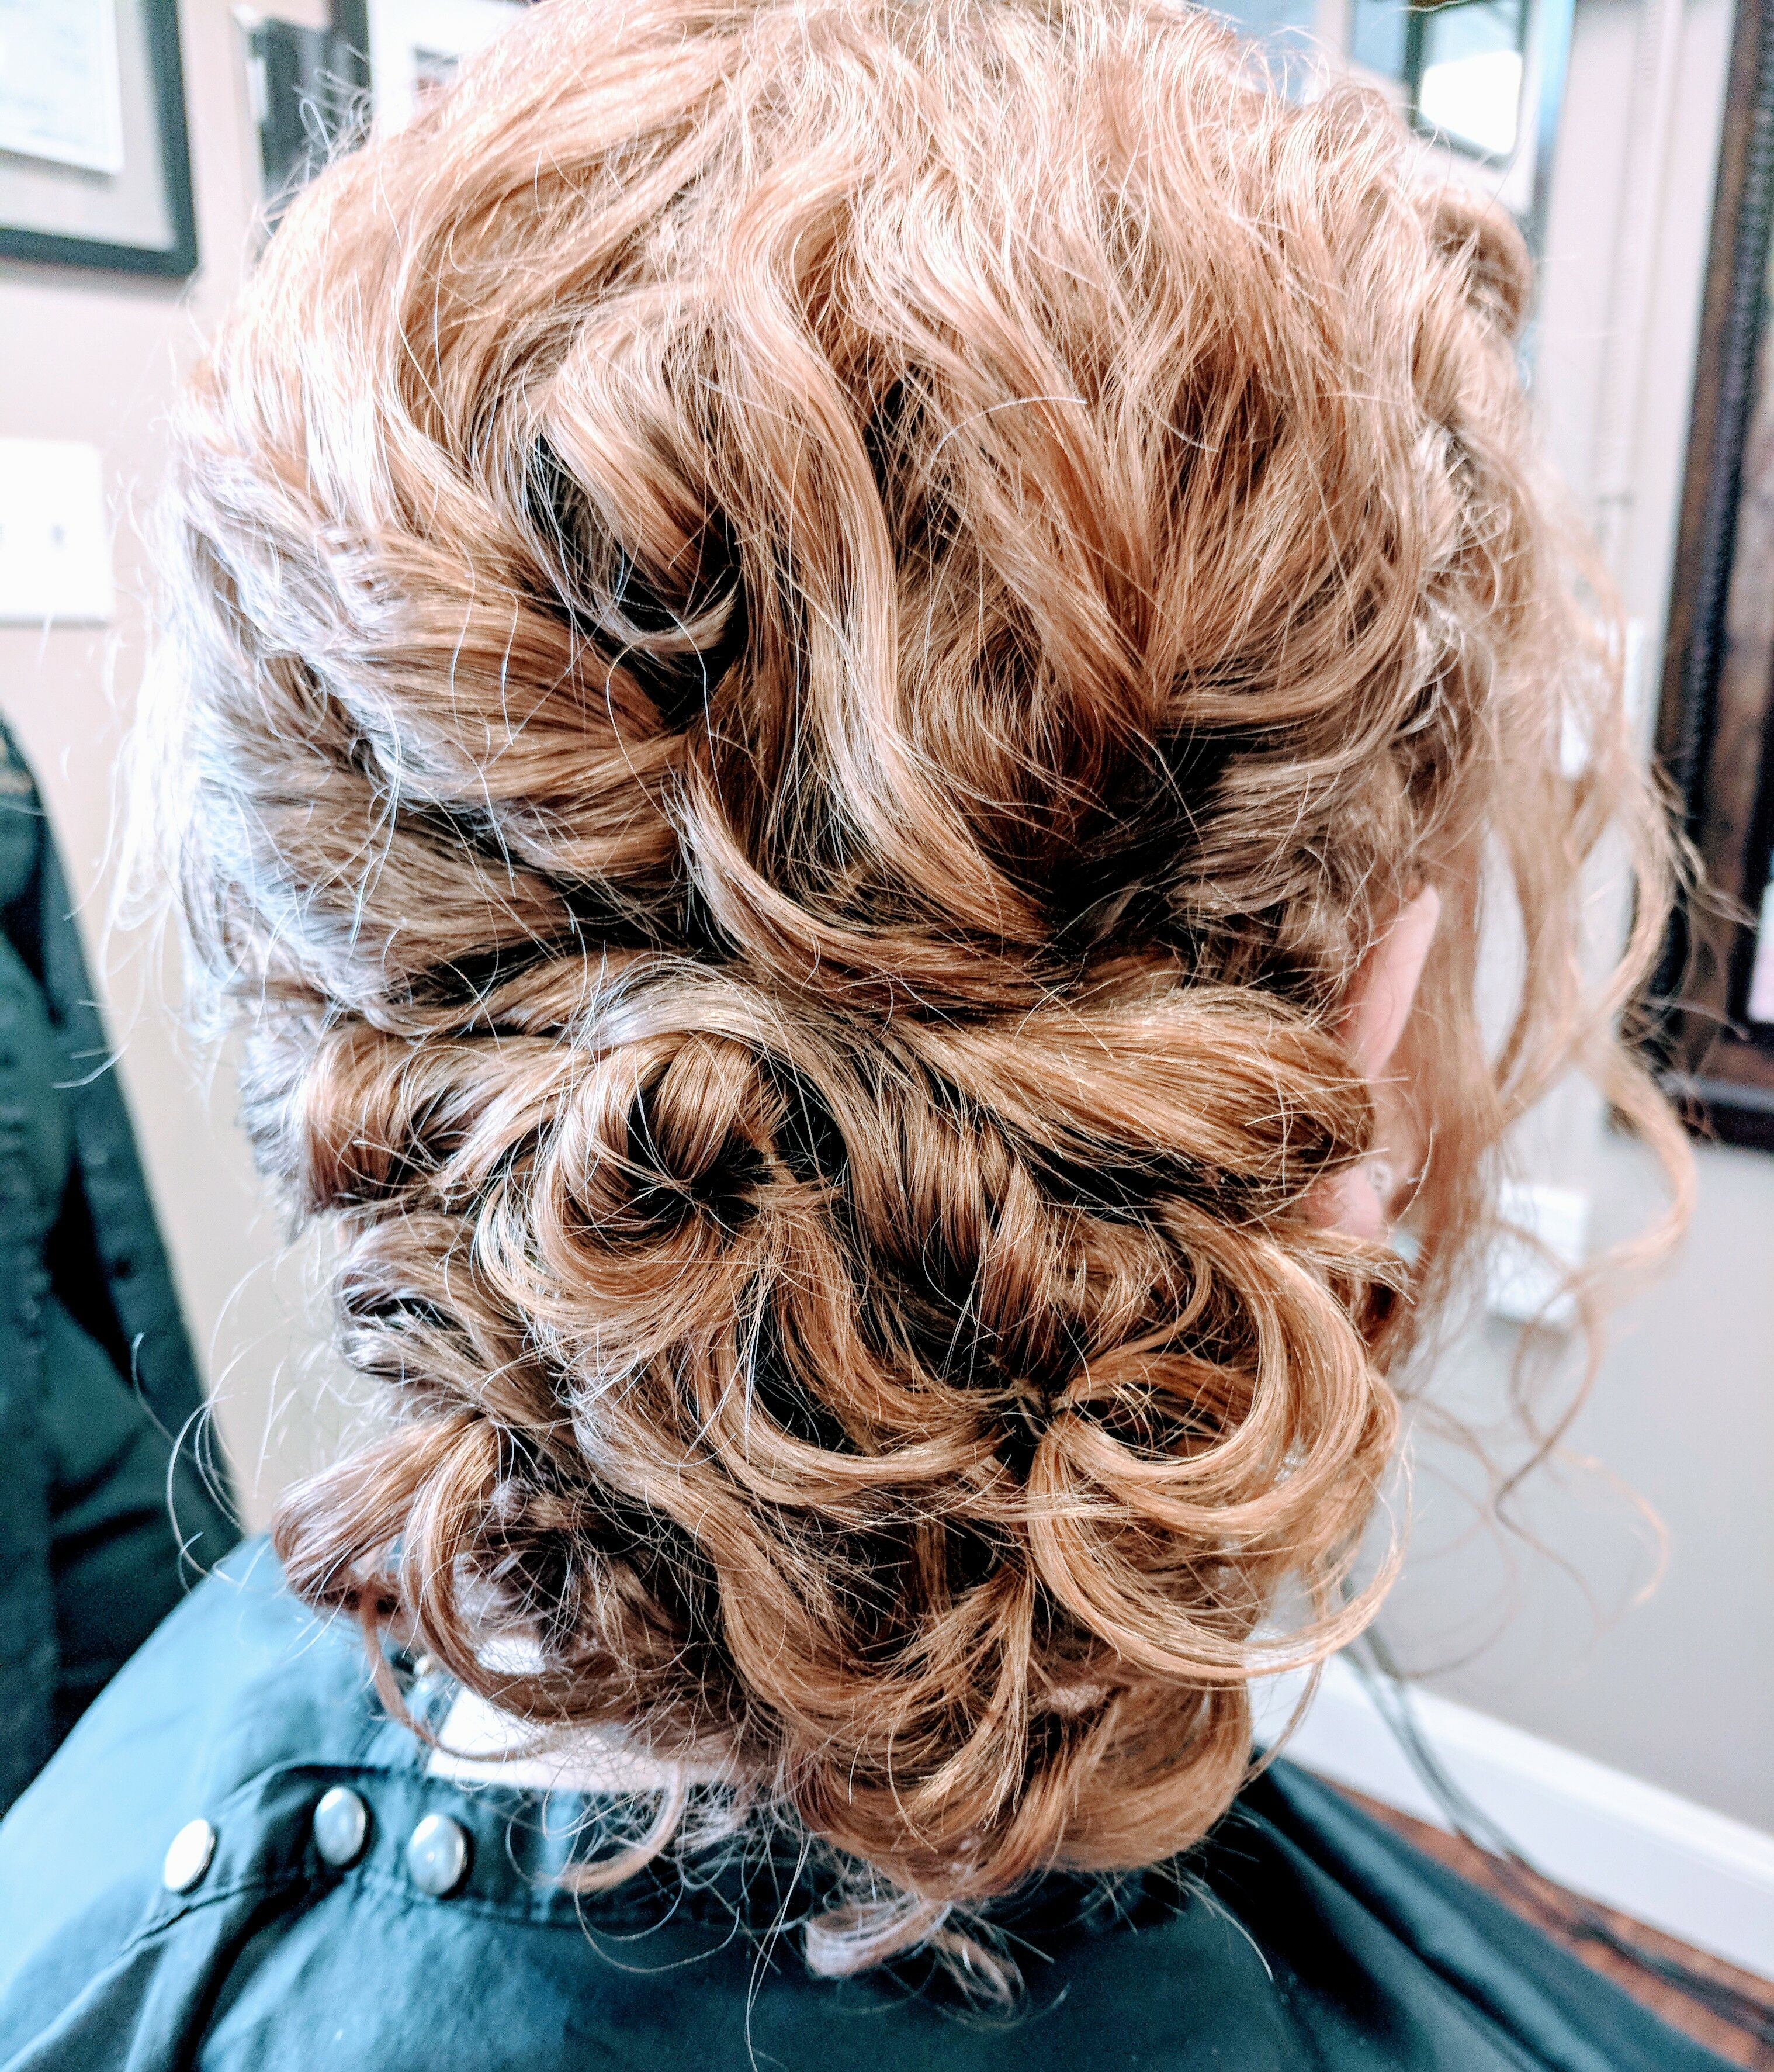 beauty salons in syracuse, ny - the knot